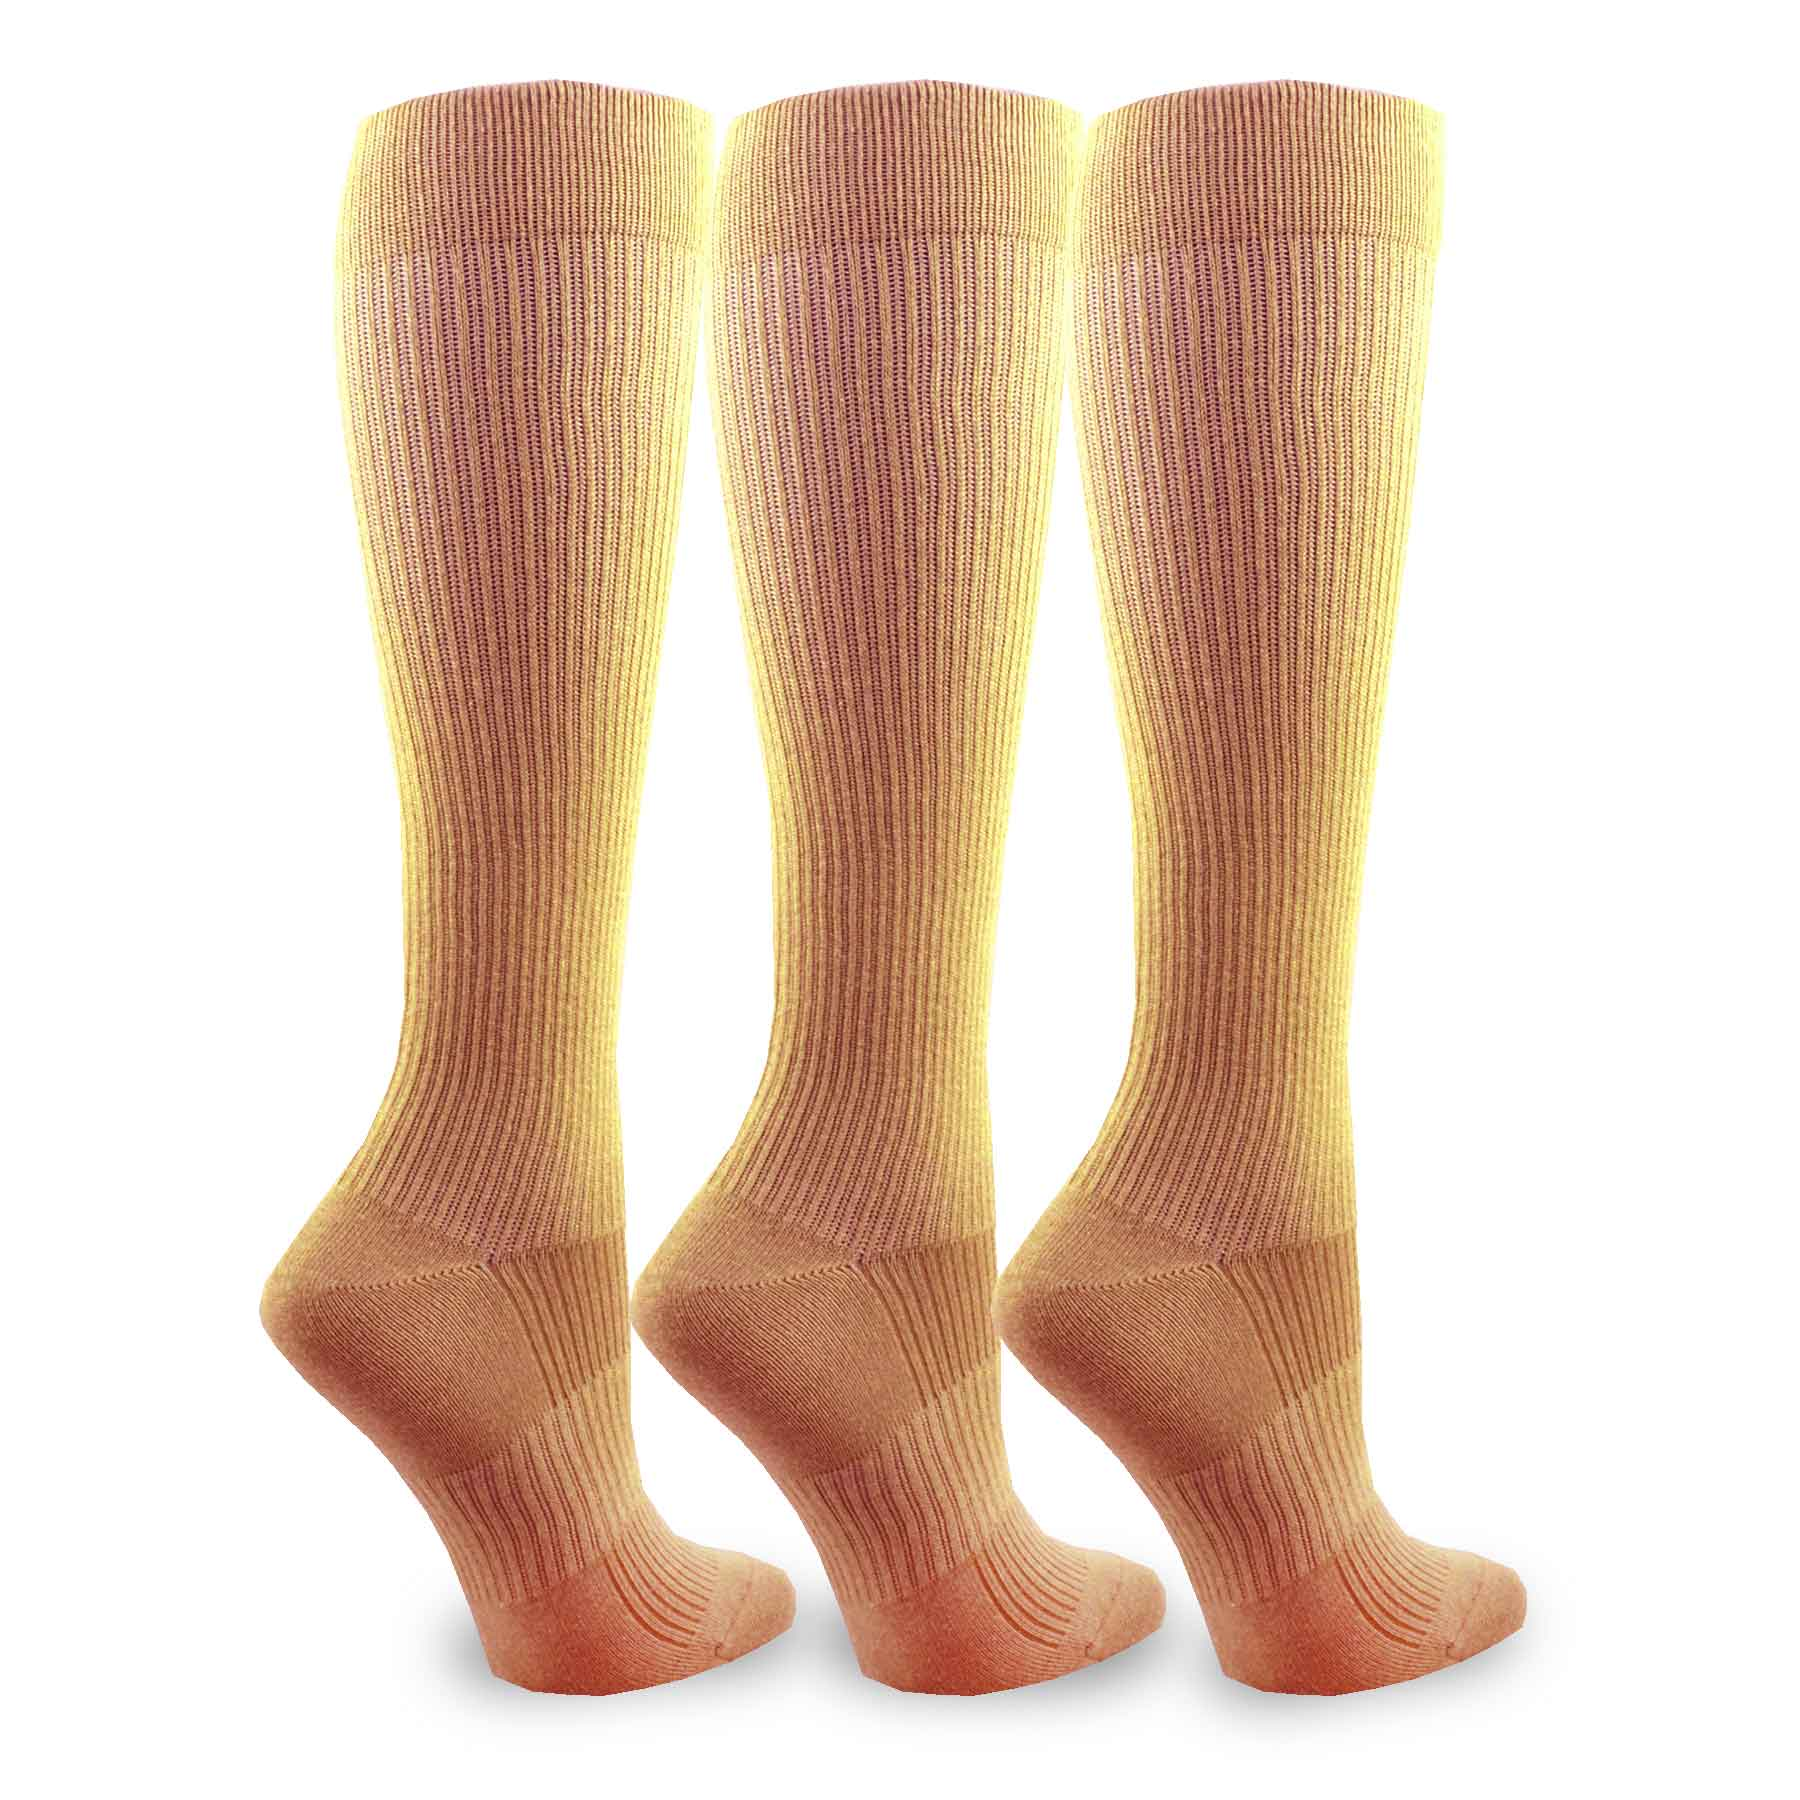 TeeHee Compression 3-pk Knee High Sock for Women, Taupe